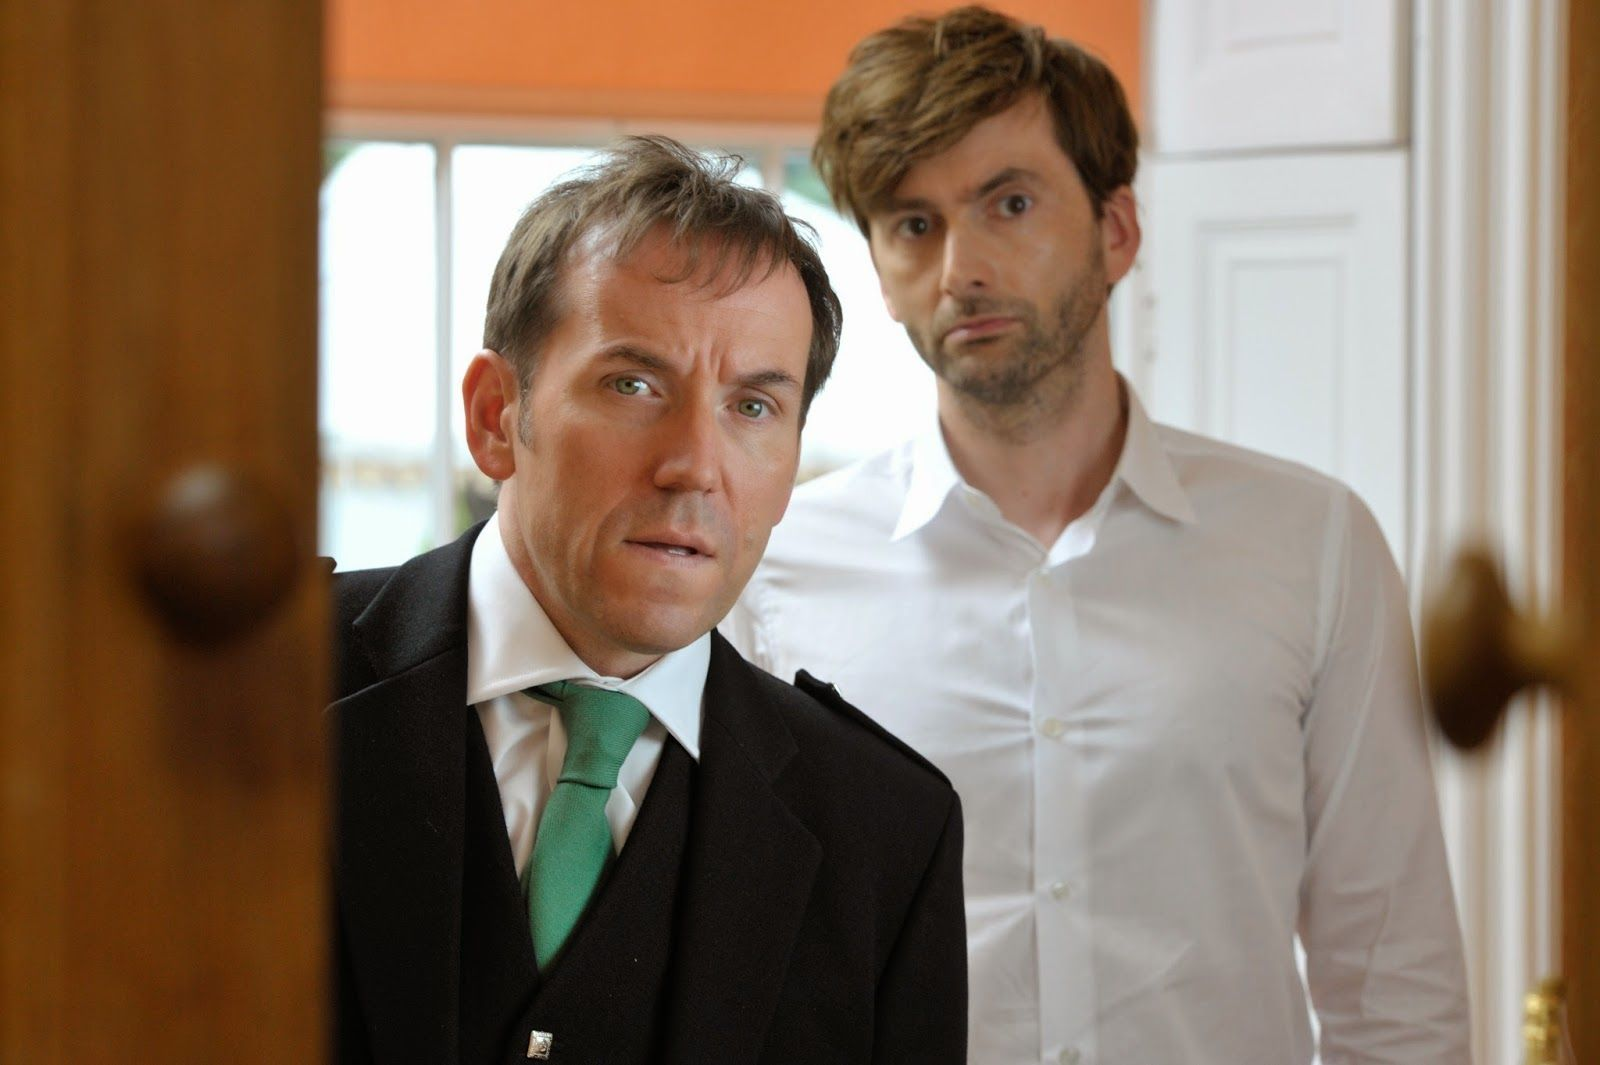 PHOTOS: New Images From What We Did On Our Holiday Starring David Tennant   David Tennant News From www.david-tennant.com